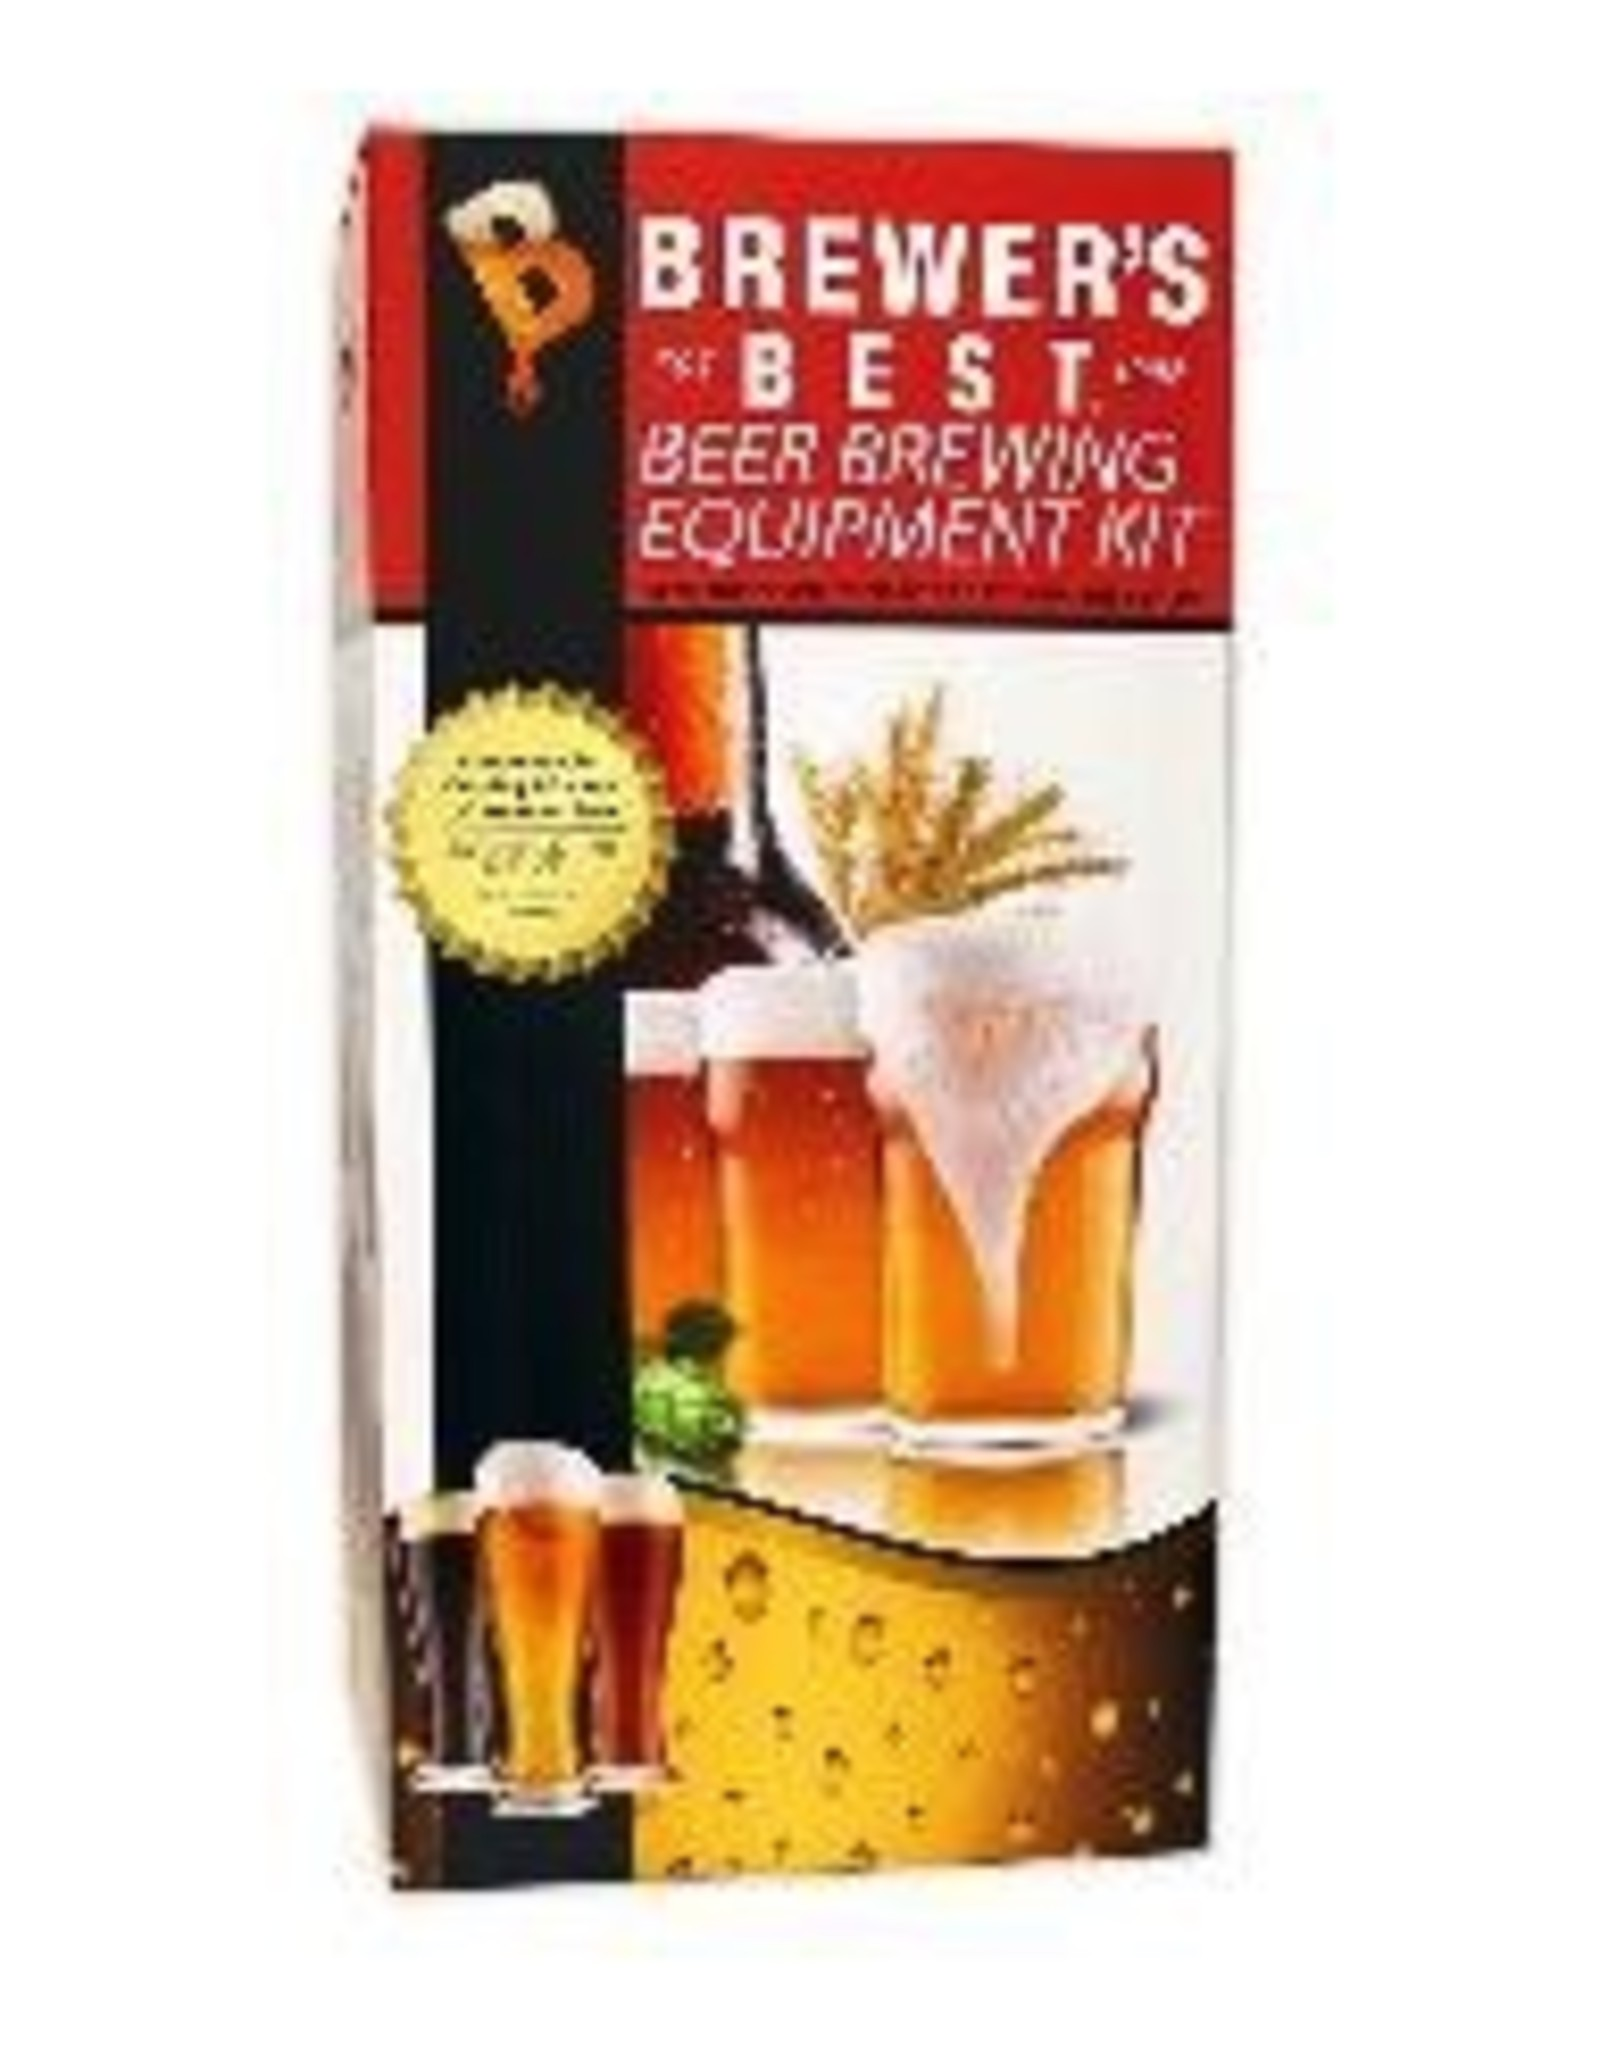 BREWERS BEST BREWER'S BEST EQUIPMENT KIT